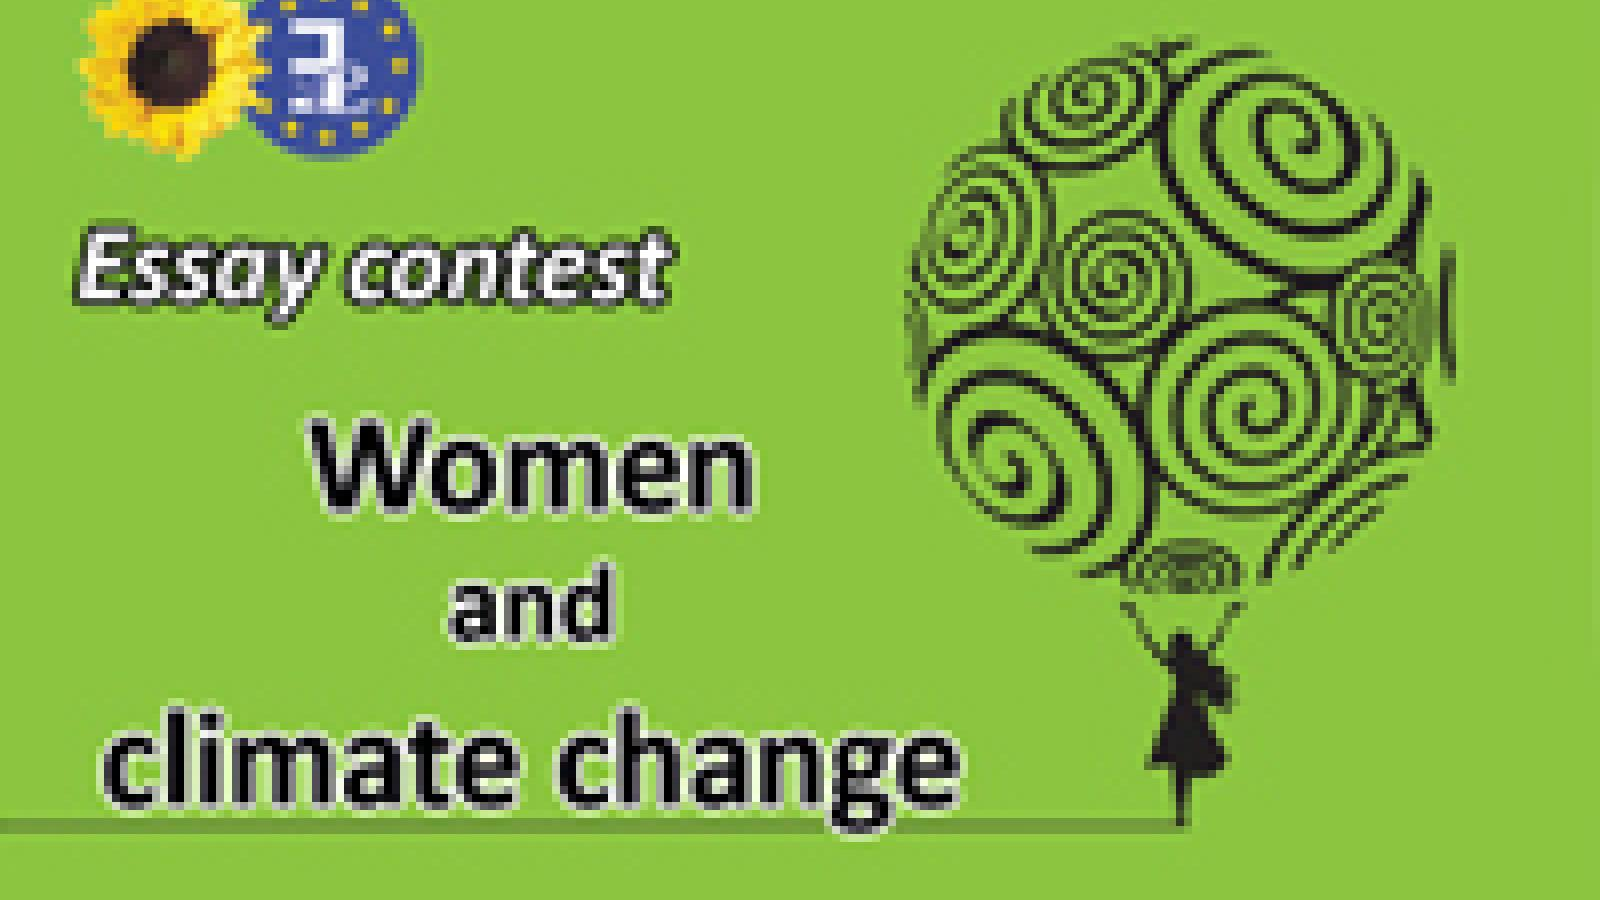 essay contest women and climate change greens efa